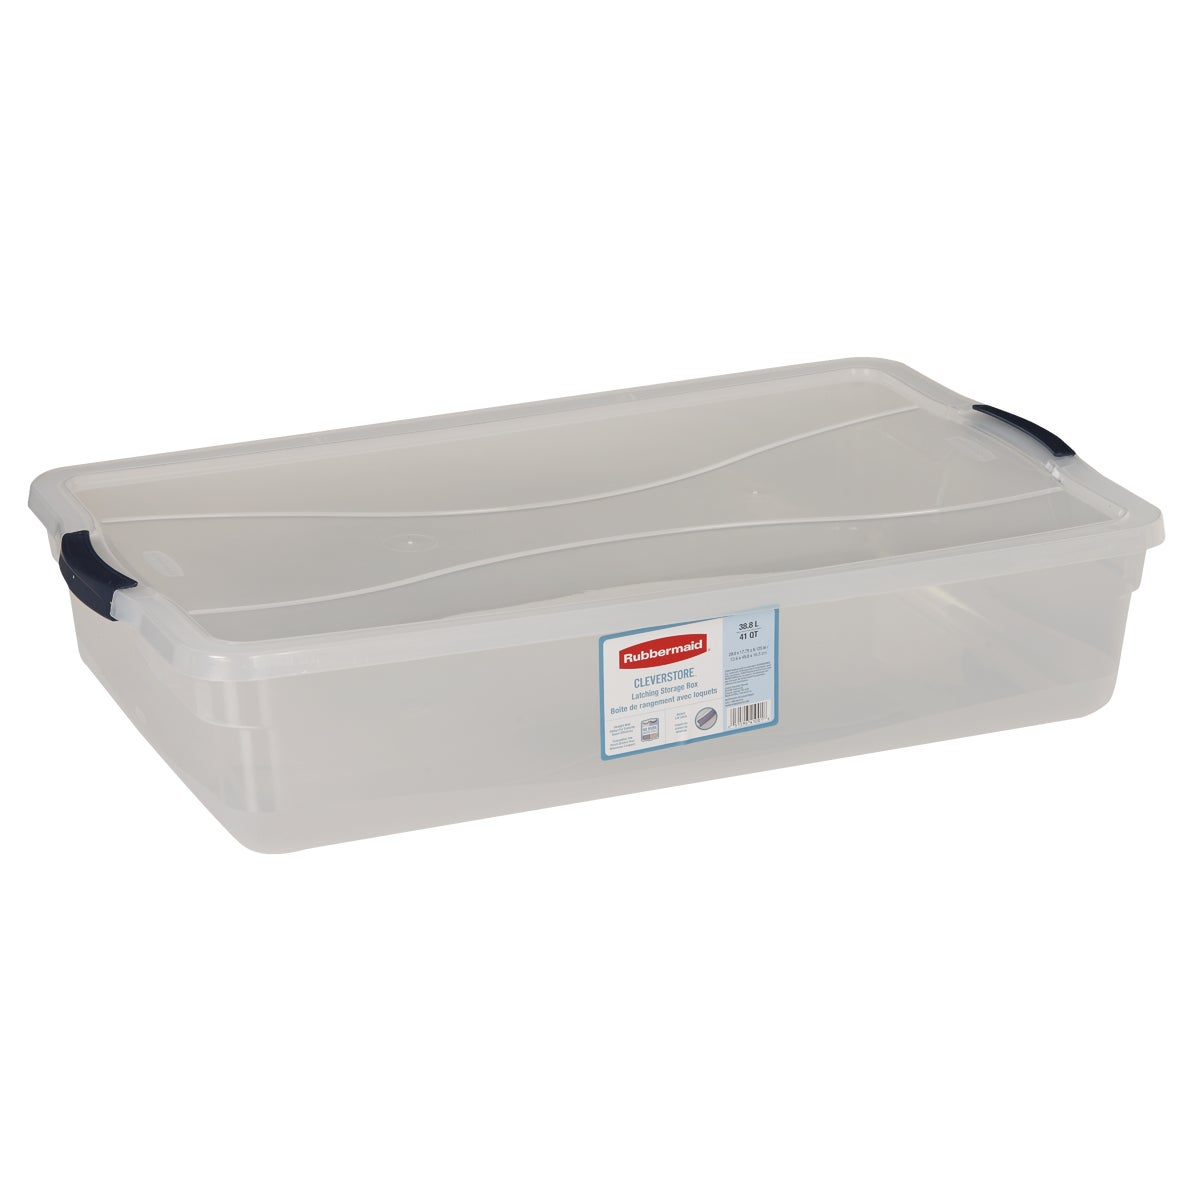 41QT LATCHING STORAGE